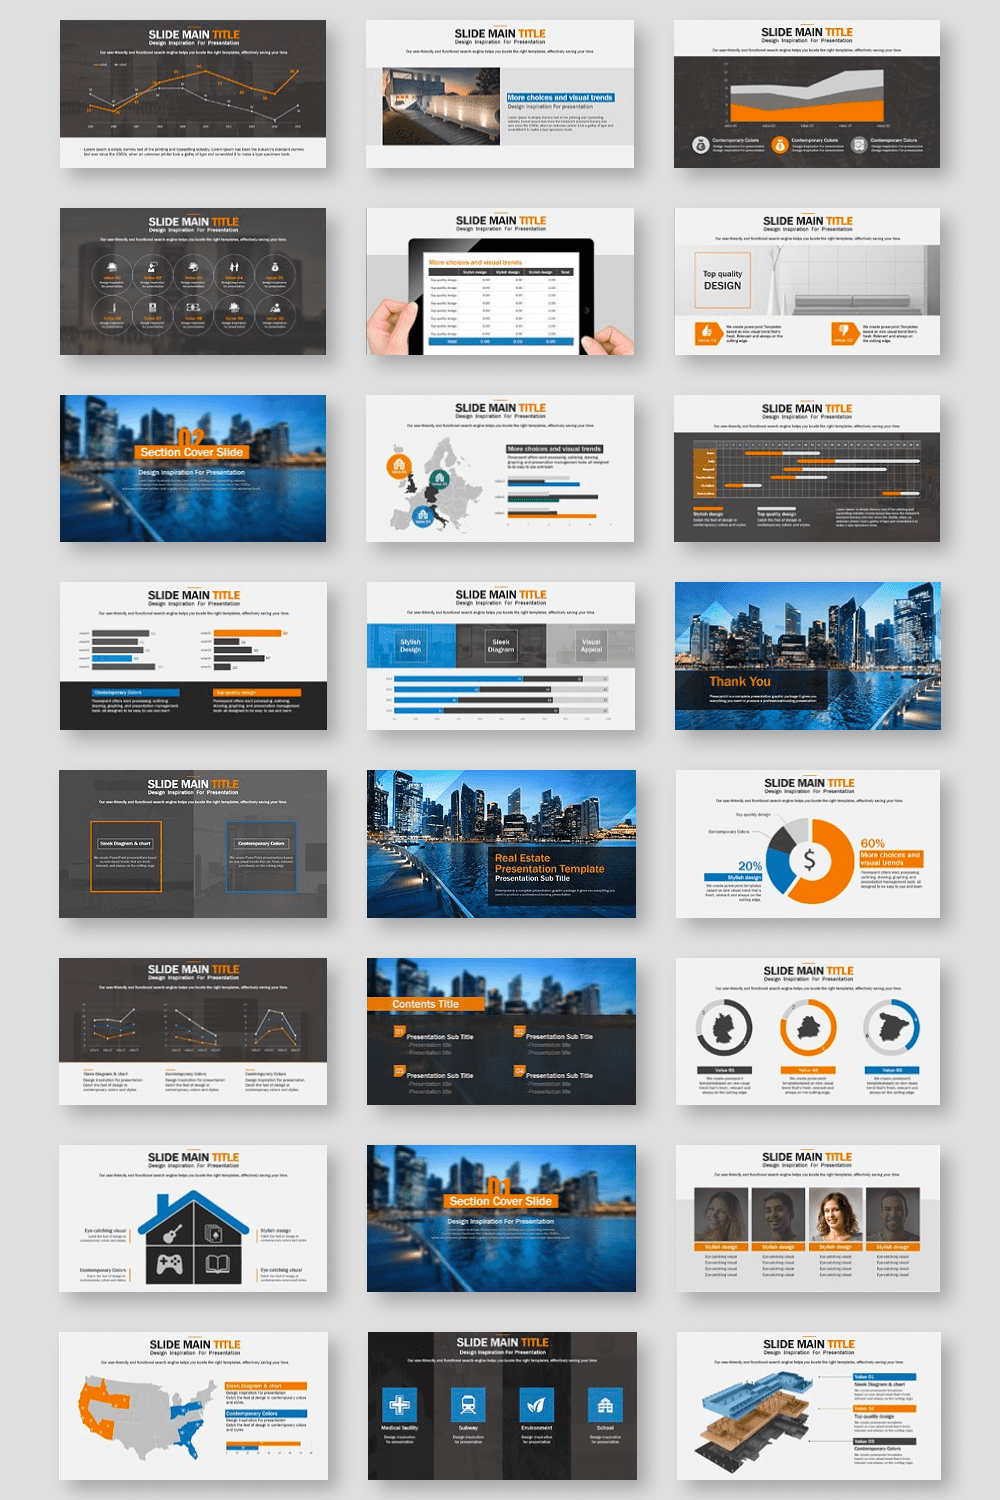 The template has a lot of graphics, diagrams and infographics to simplify the delivery of information.